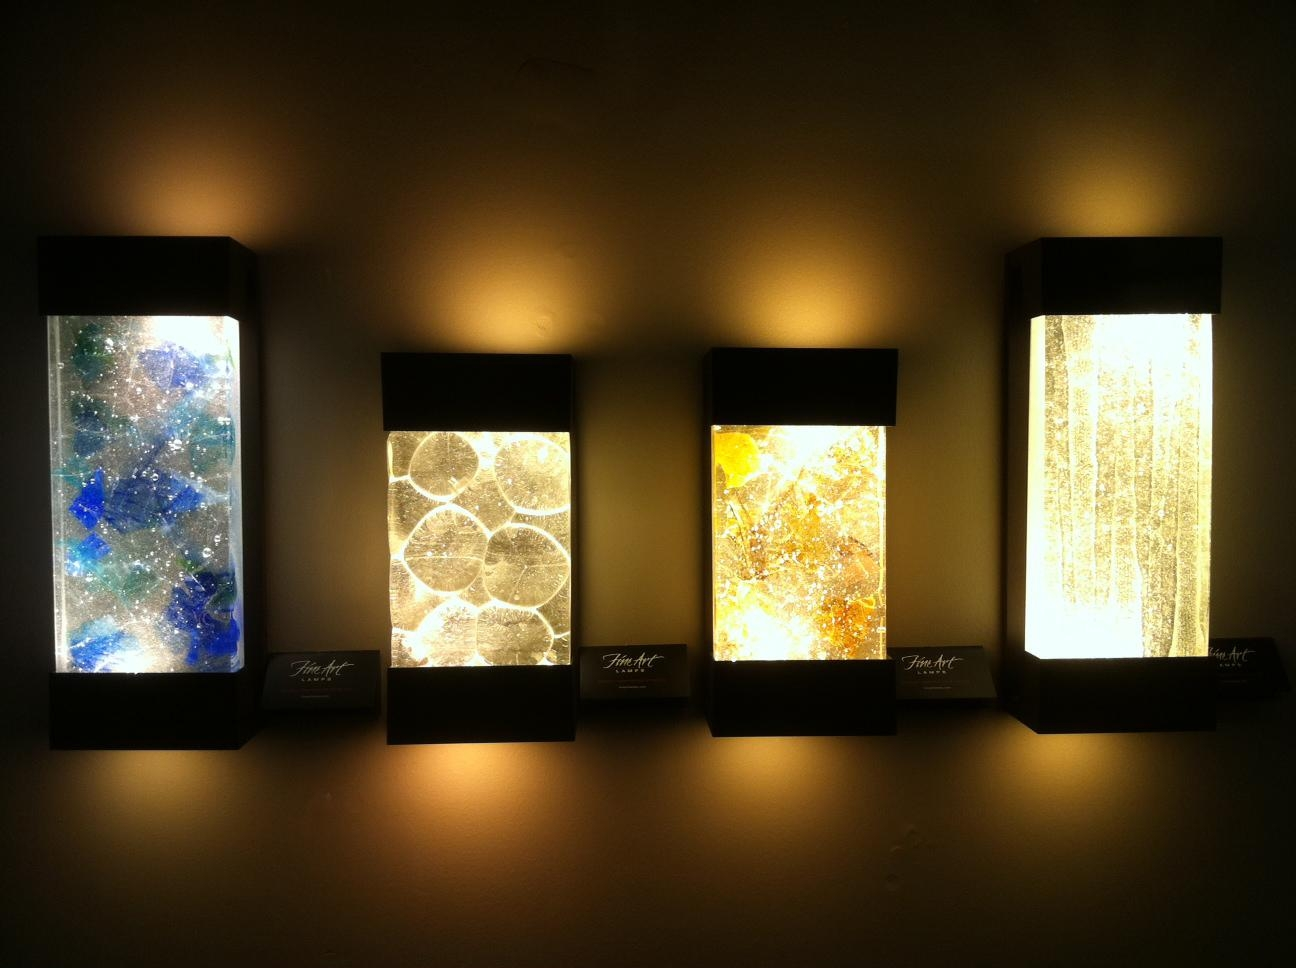 Wall Art With Led Lights – The Art Of The Future | Warisan Lighting Intended For Wall Art Lighting (View 9 of 20)